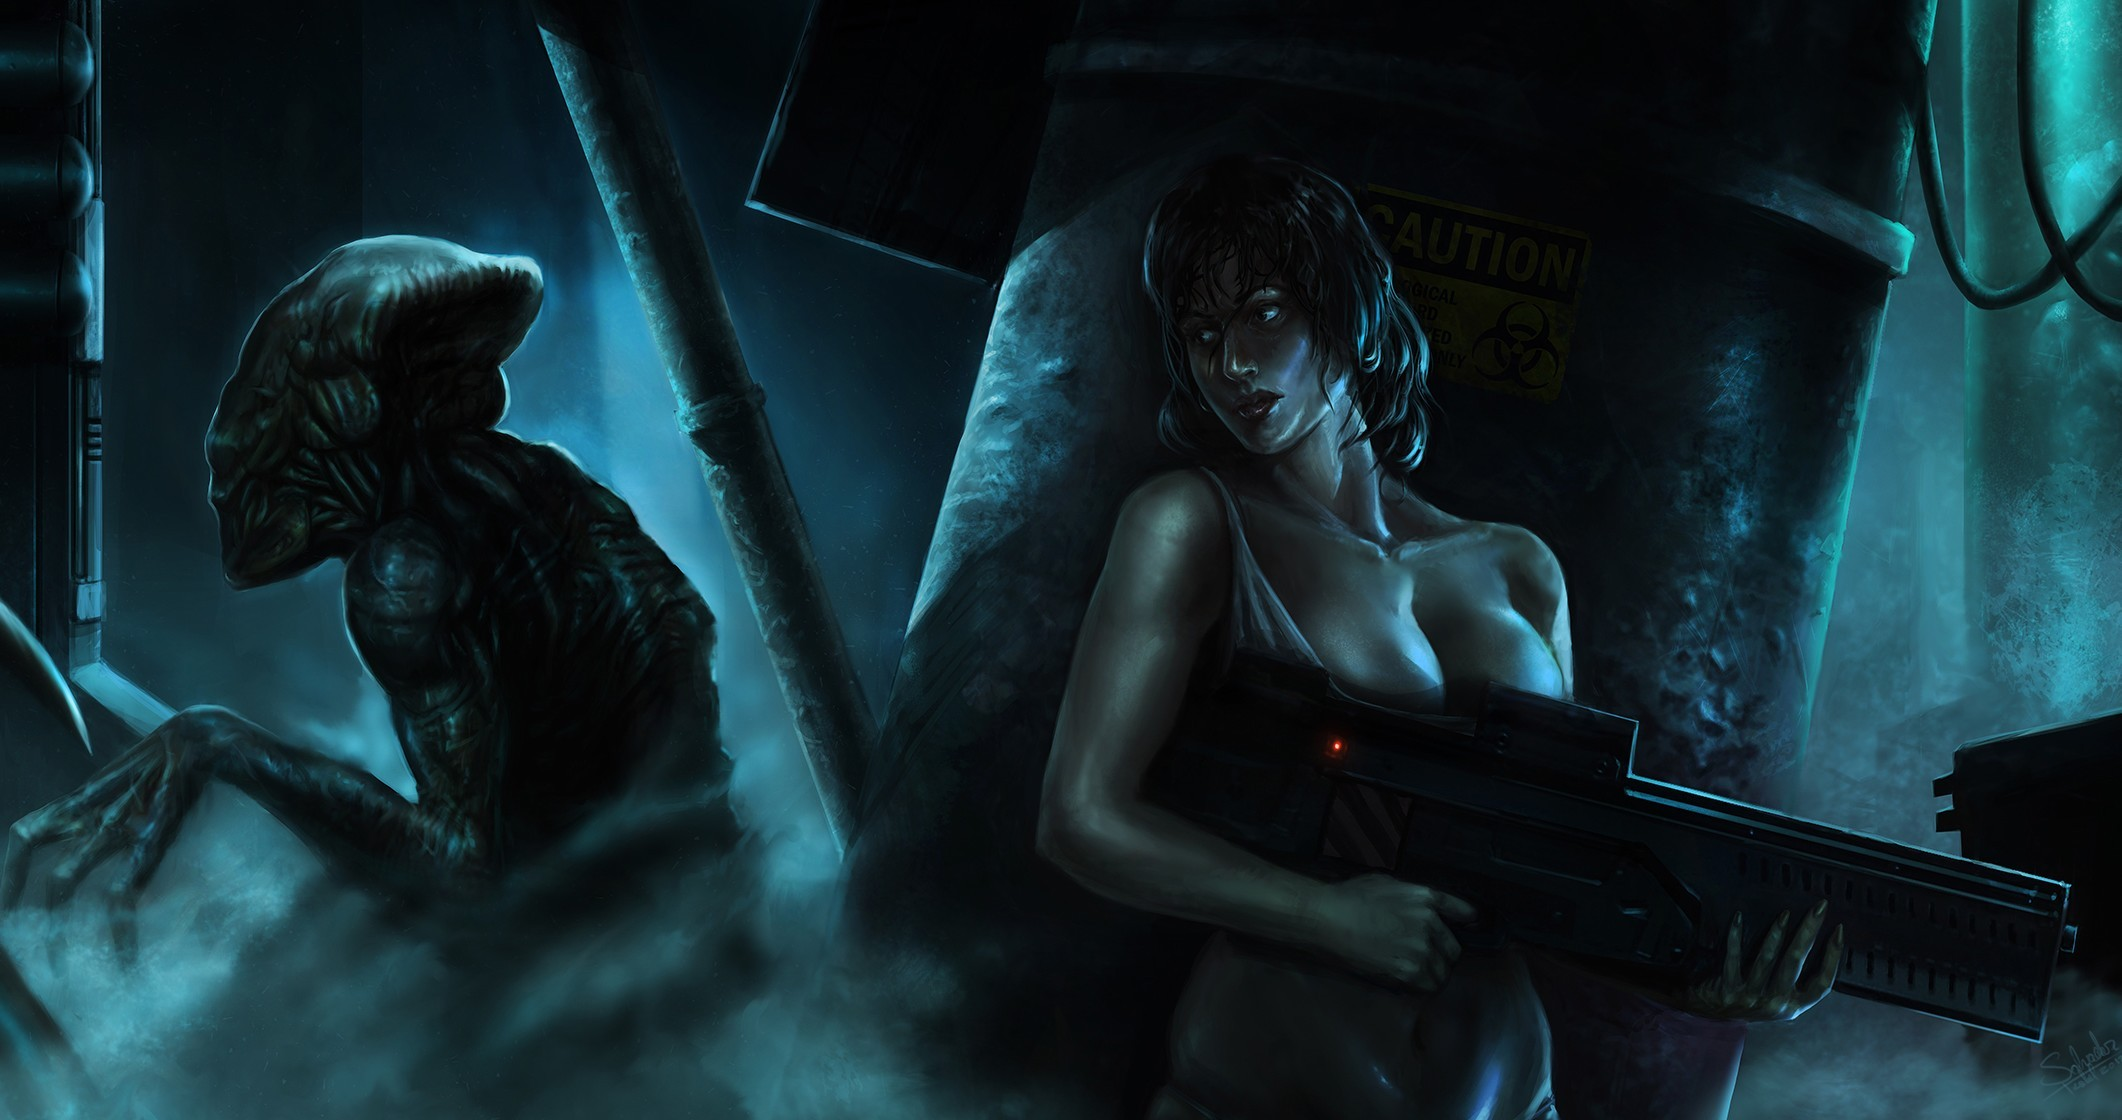 Monster vs alien girls sex wallpaper nude video